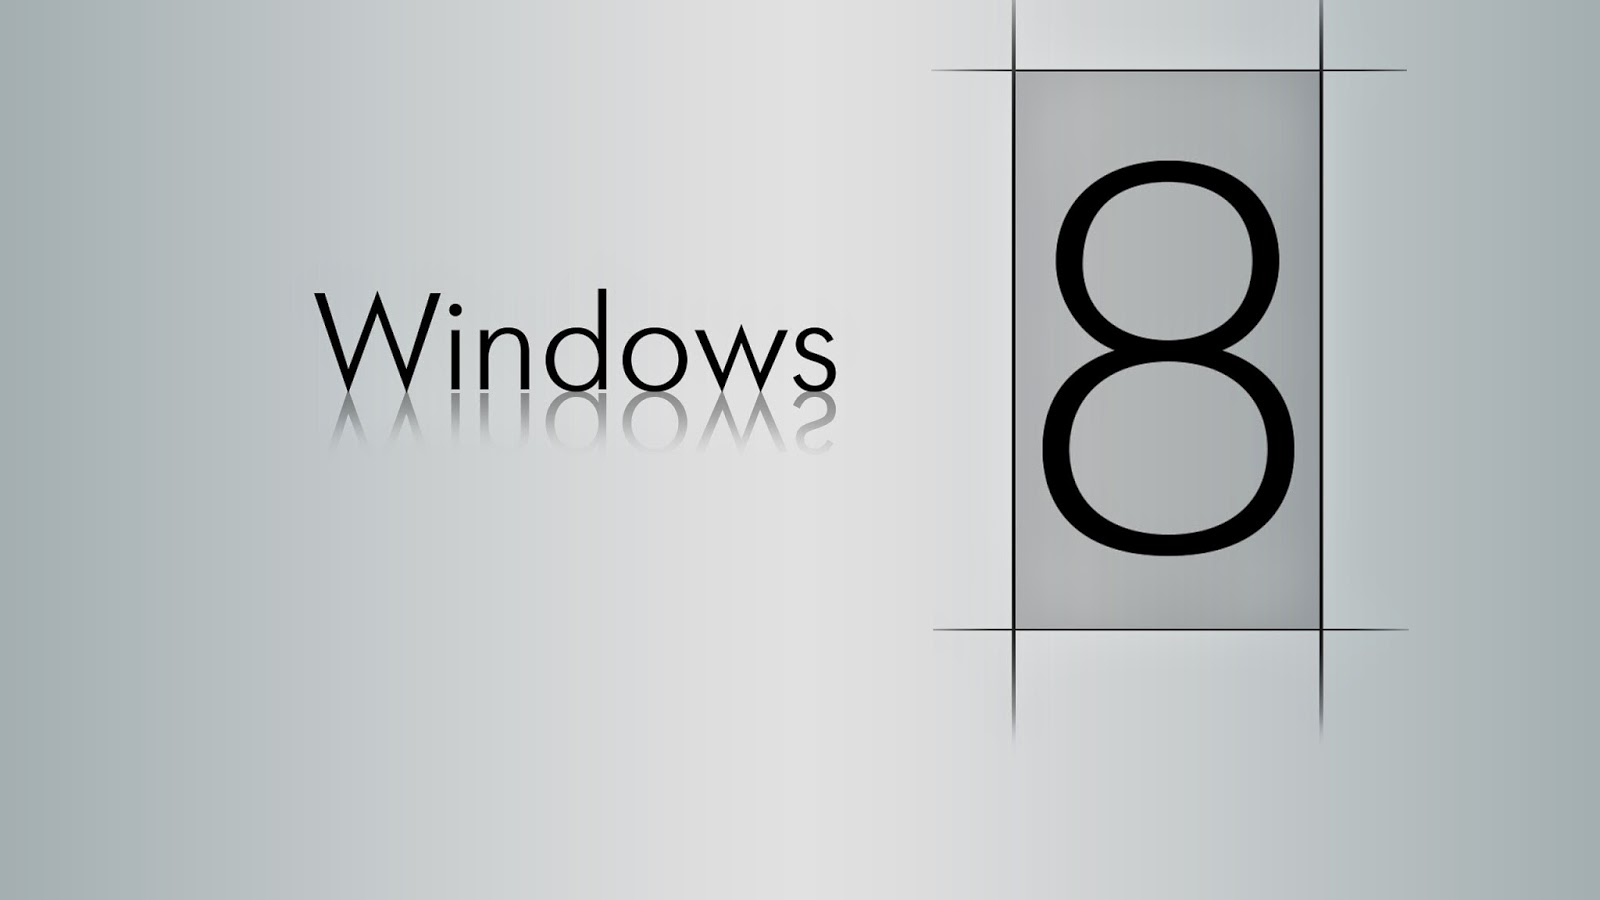 Stylish-Windows-8-silver-theme-wallpapers-for-developers-and-designers.jpg